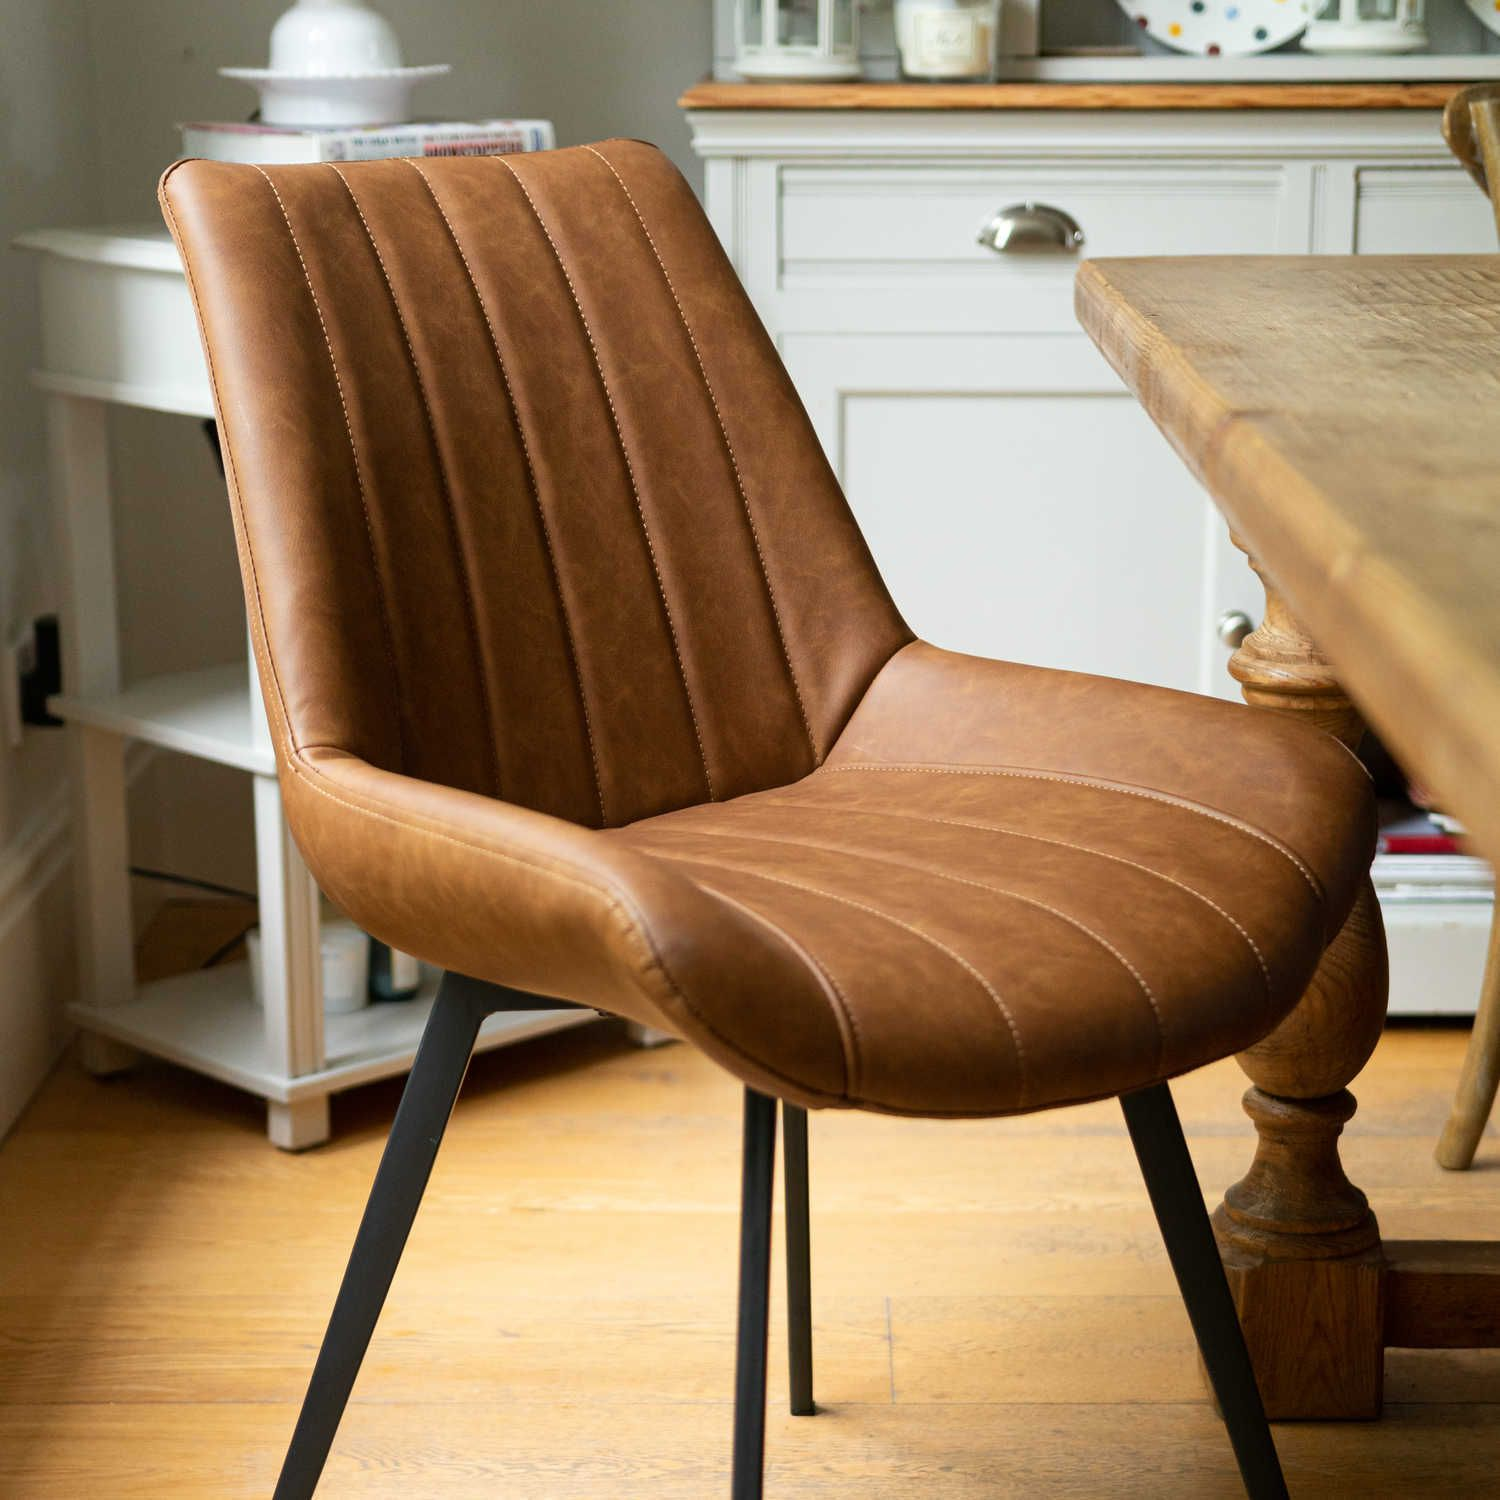 8 Leather Dining Chairs Faux Leather Dining Chairs Tan Dining Chair Dining Chairs Uk